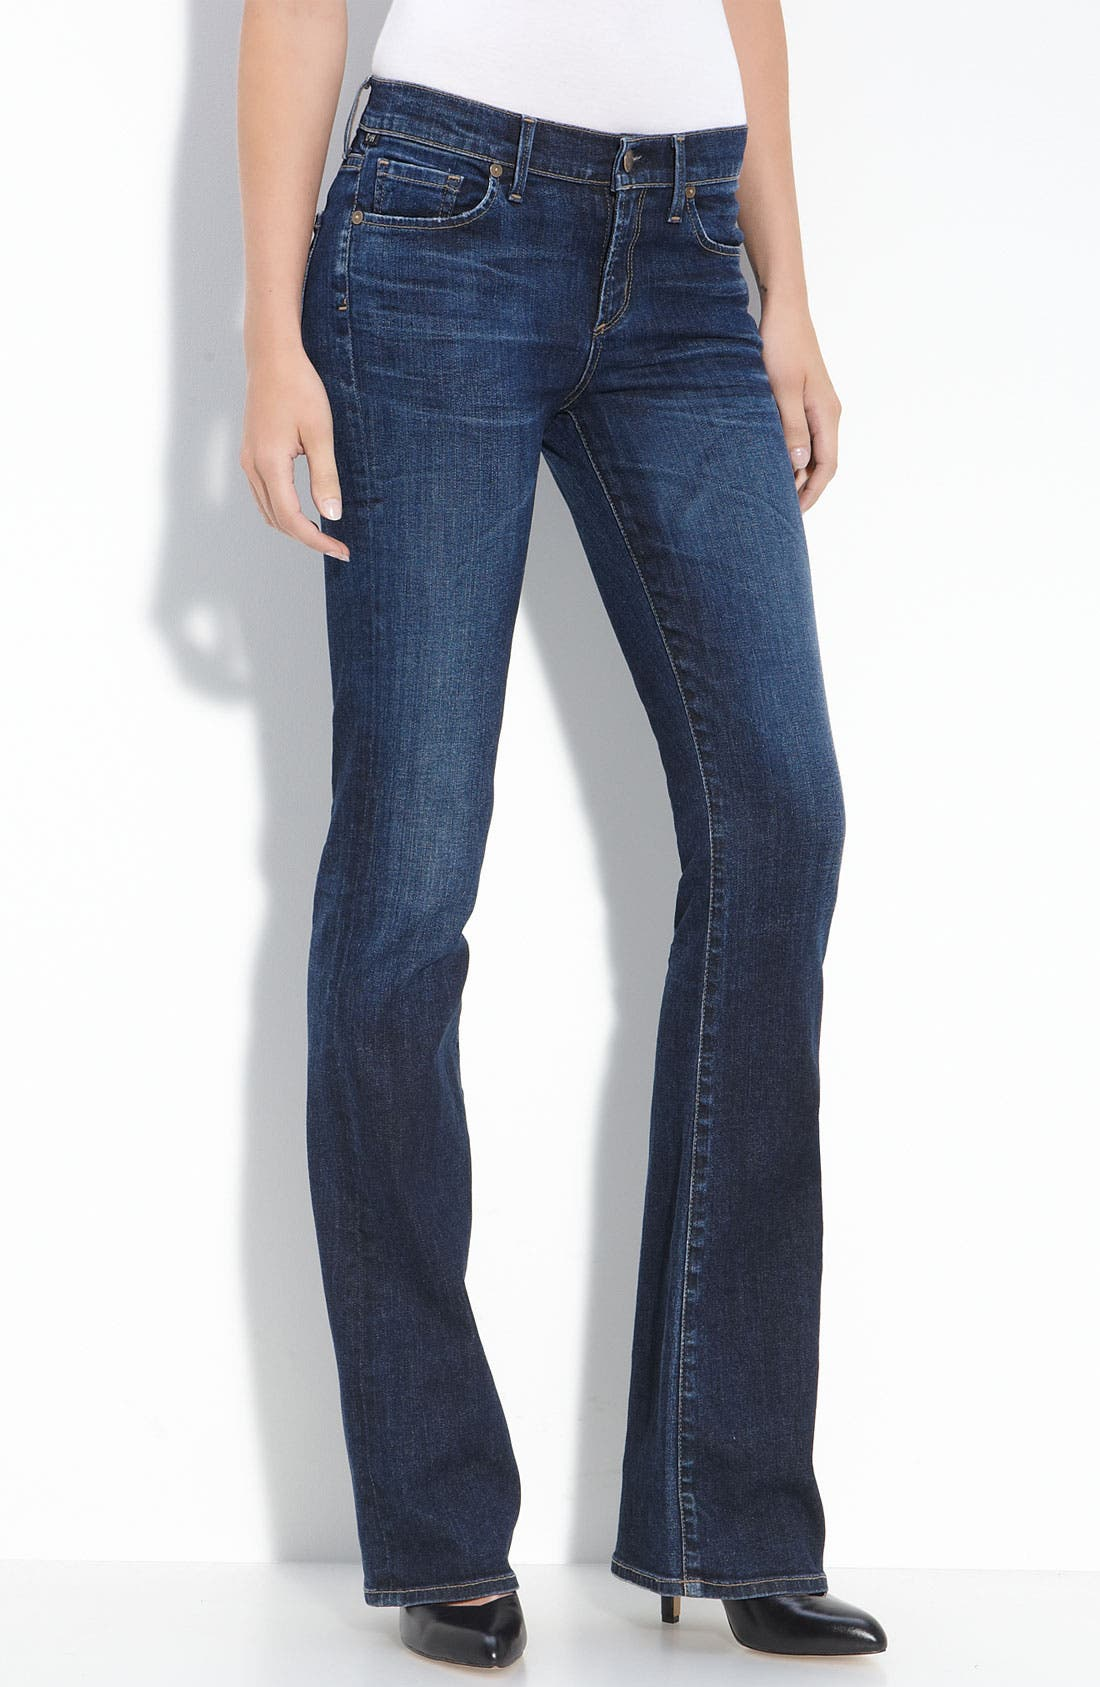 Main Image - Citizens of Humanity 'Kelly' Bootcut Denim Jeans (Spectrum Wash)